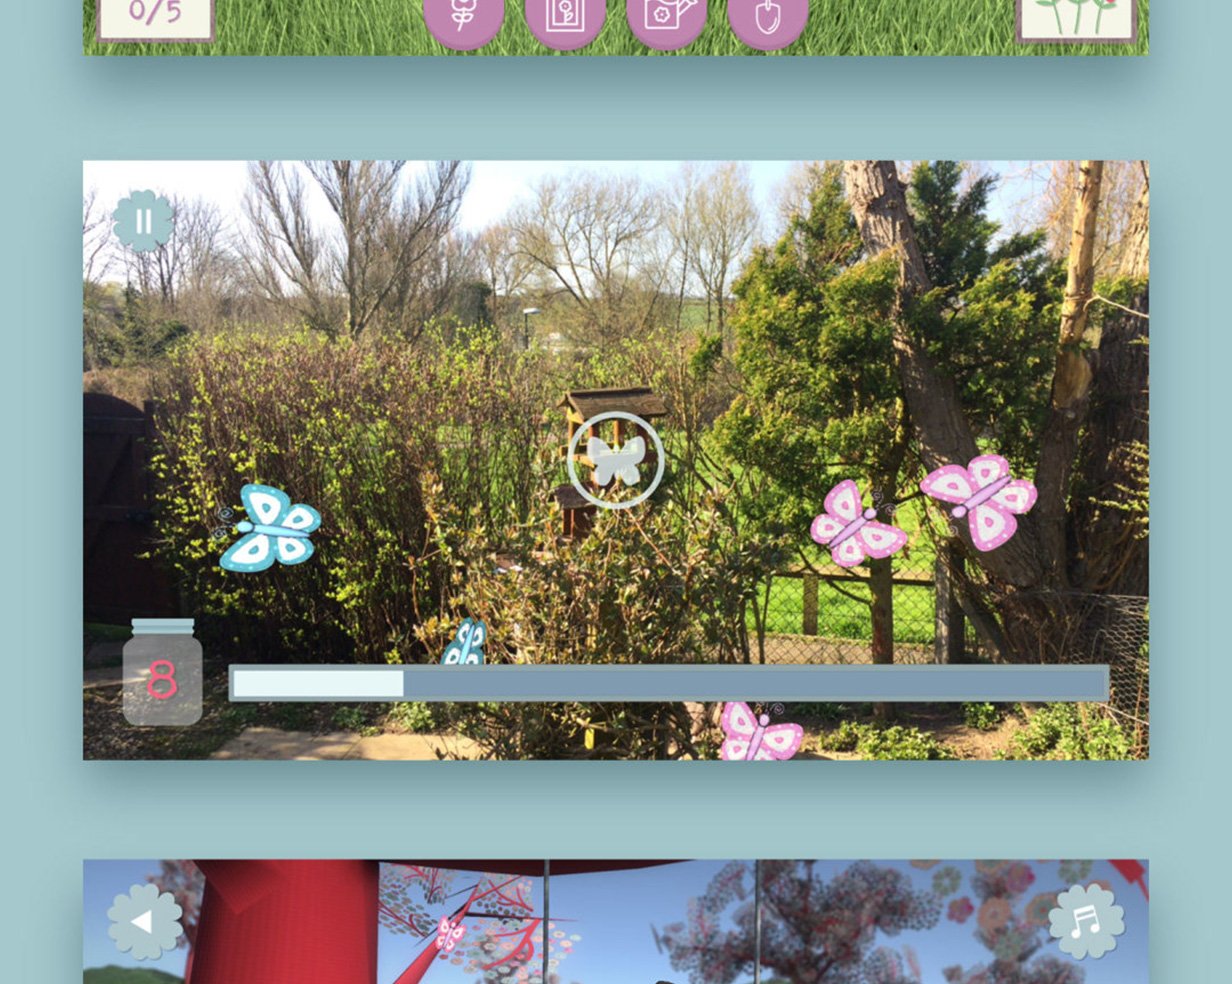 The butterfly AR game from the Boofle mobile app